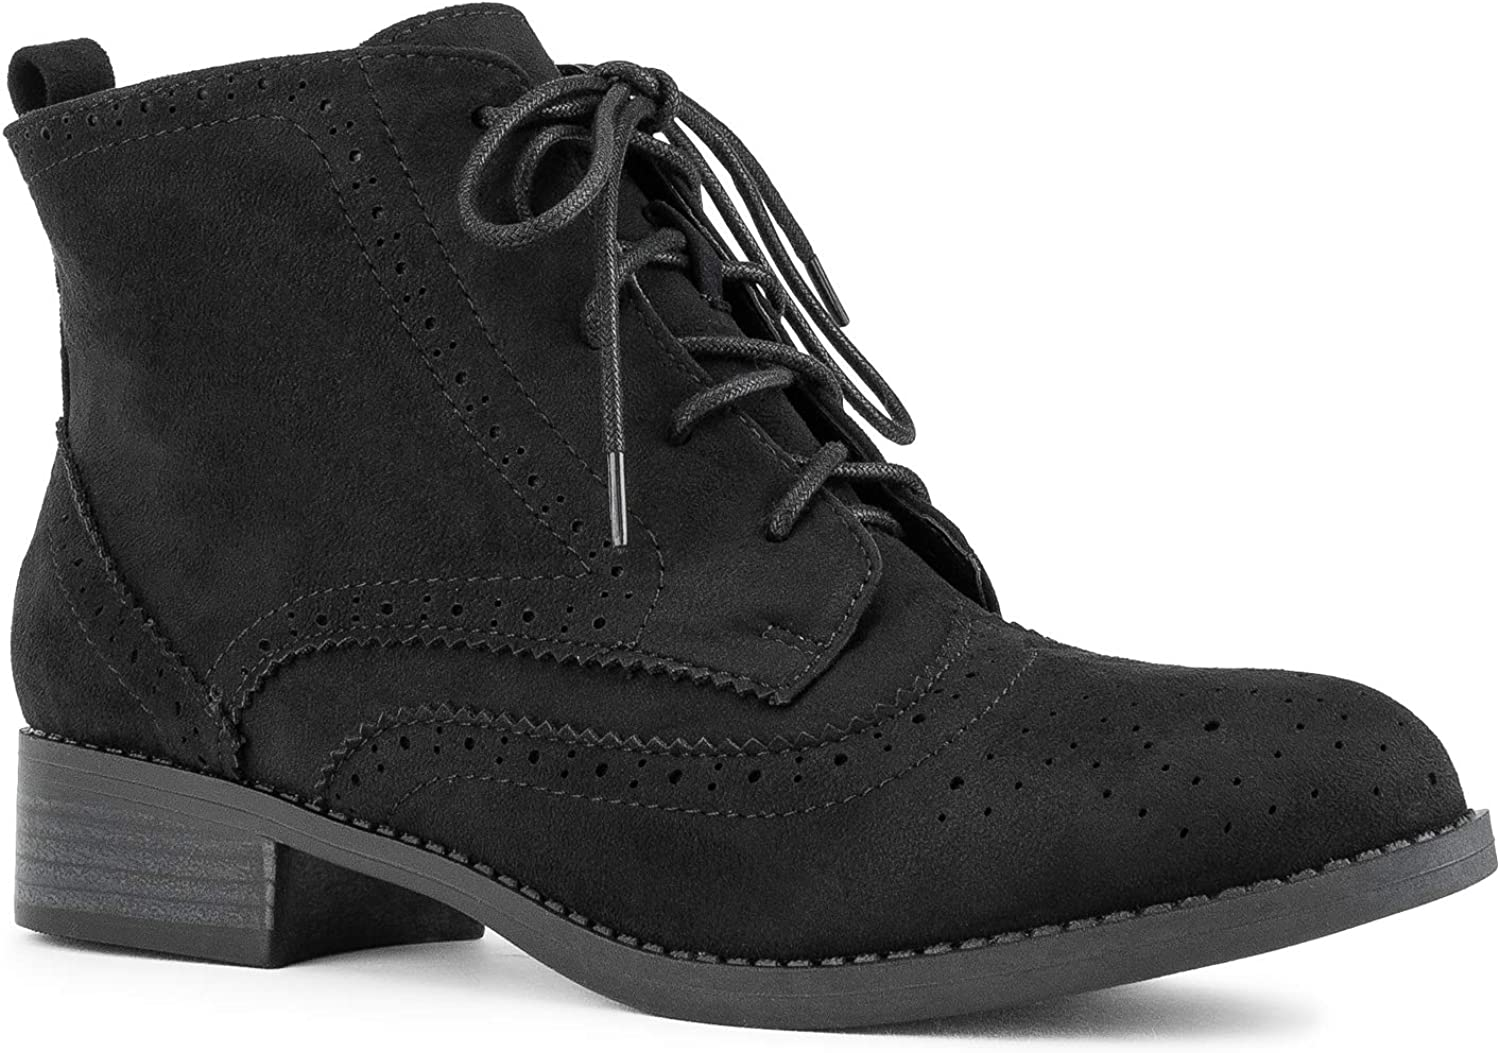 RF ROOM OF FASHION Women's Wing Tip Saddle Lace up Oxford Flats Ankle Boots Black Size.6